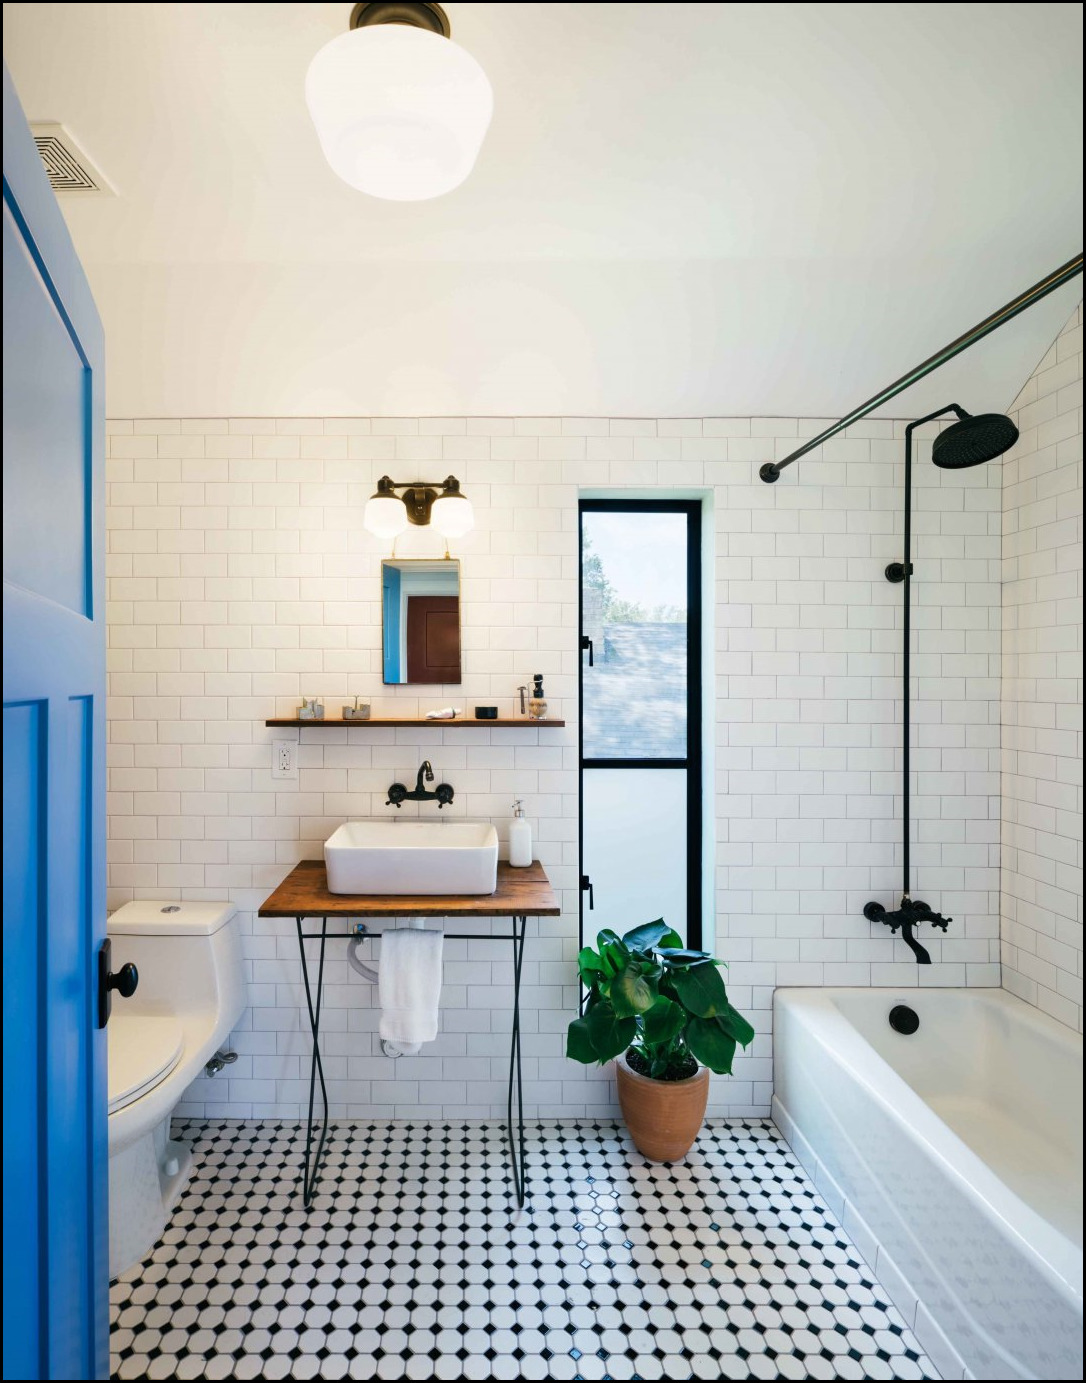 Blue Bathroom Tiles Tiled Bathrooms Contemporary Tile Design Pictures Wall  Dwell Residence Plans Bath Spa Bathspa Interior Interiordesign Shower  Houses For ...